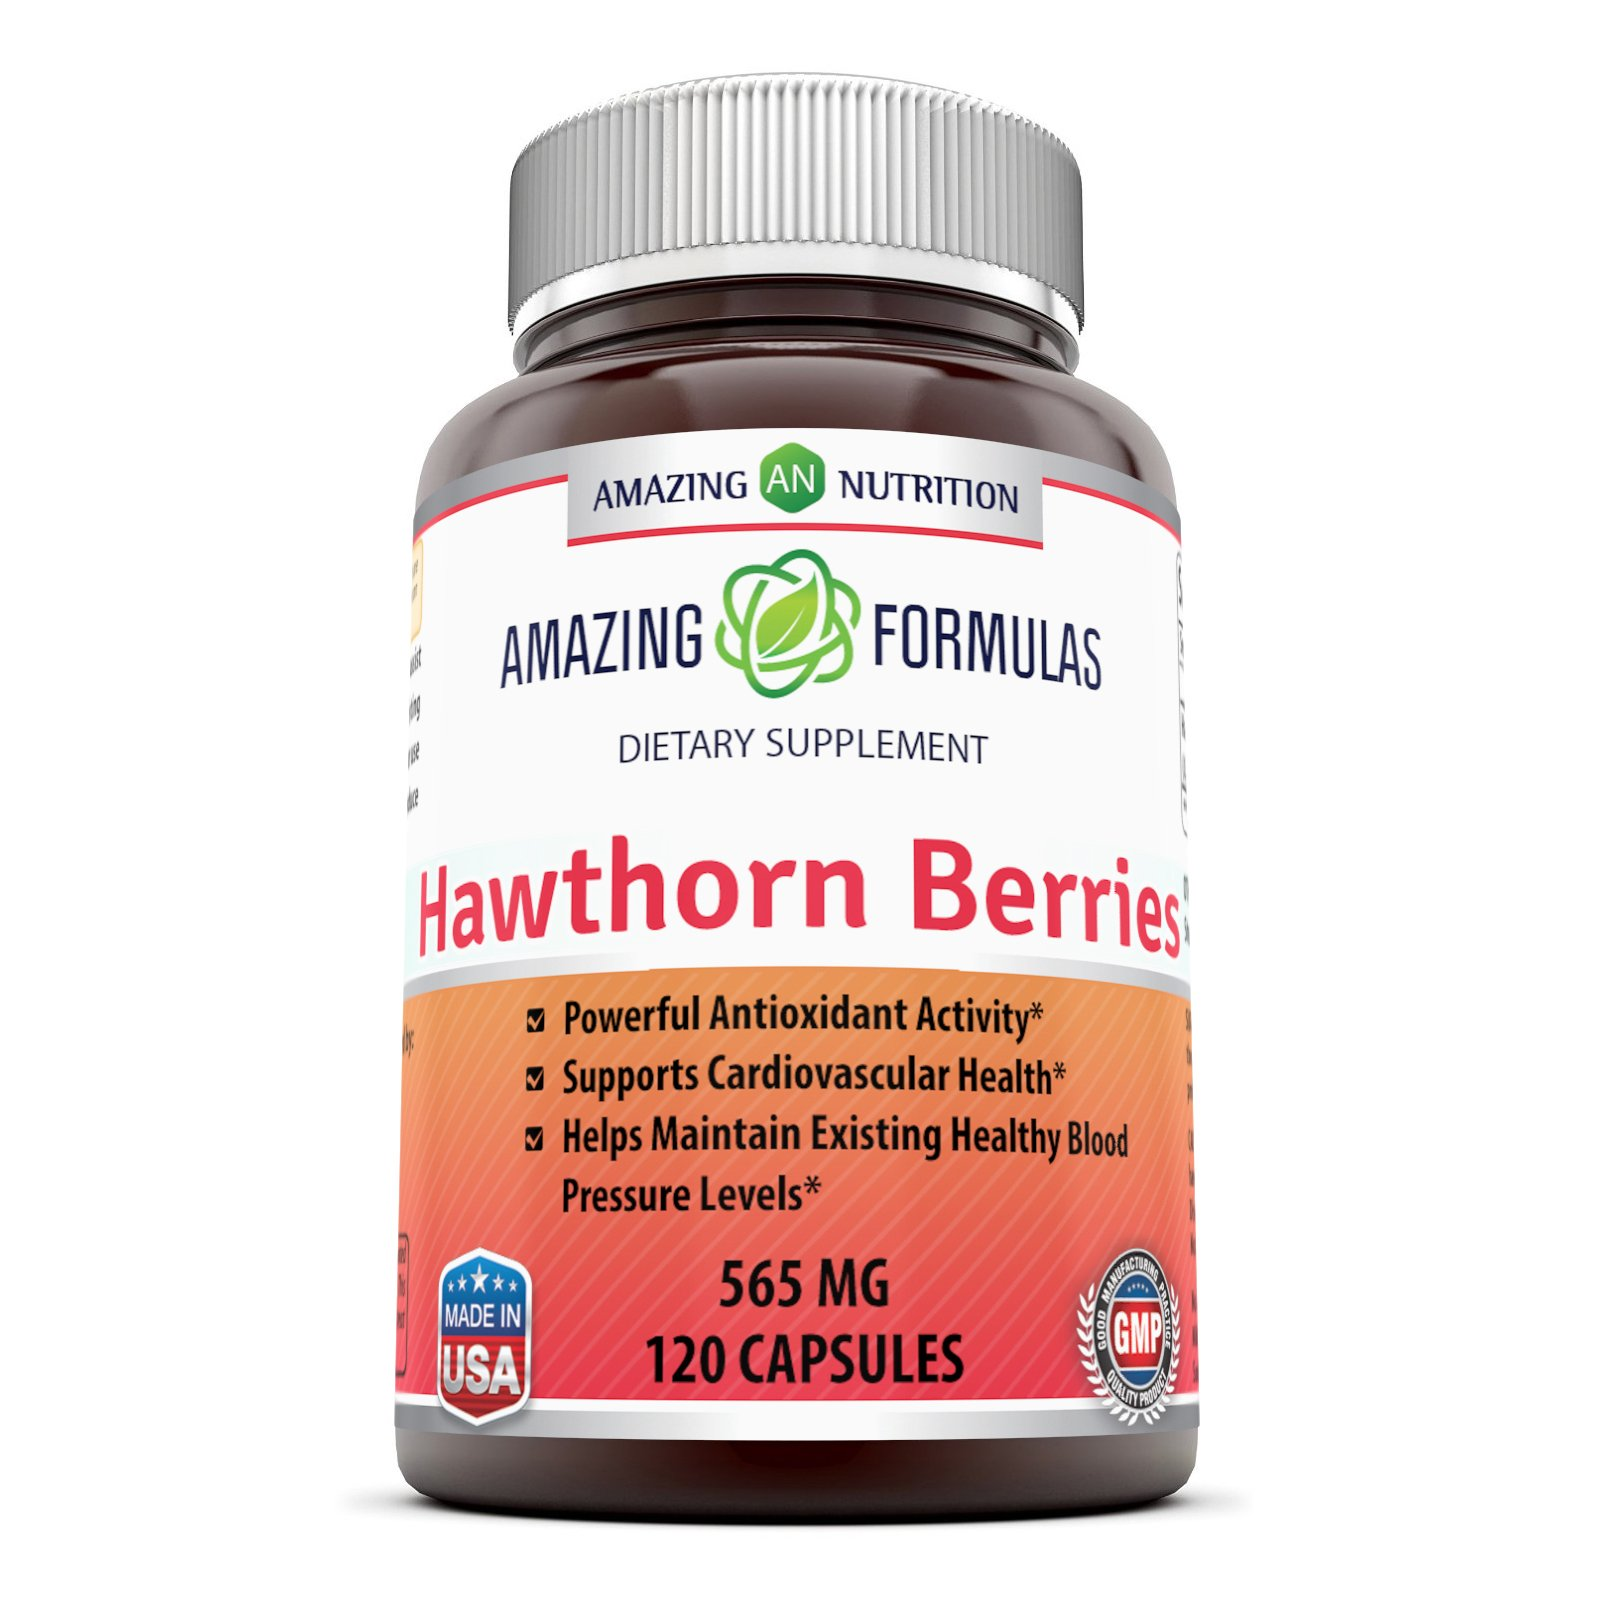 Amazing Formulas Hawthorn Berries 100% Pure Hawthorne Berry Extract * Powerful Anioxidant Activity * Supports…